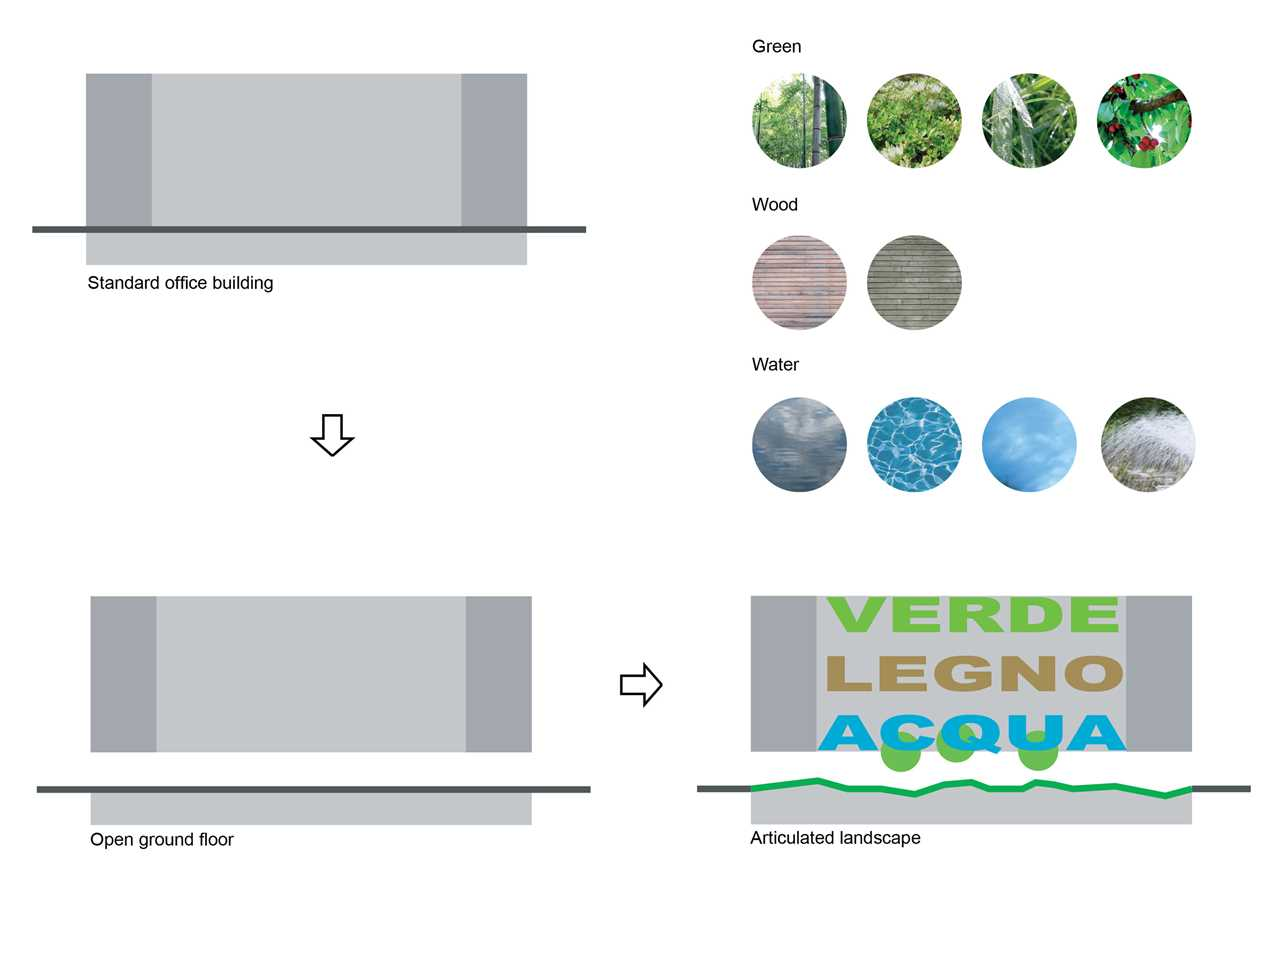 Verde Acqua E Rosa office building with green hypercore